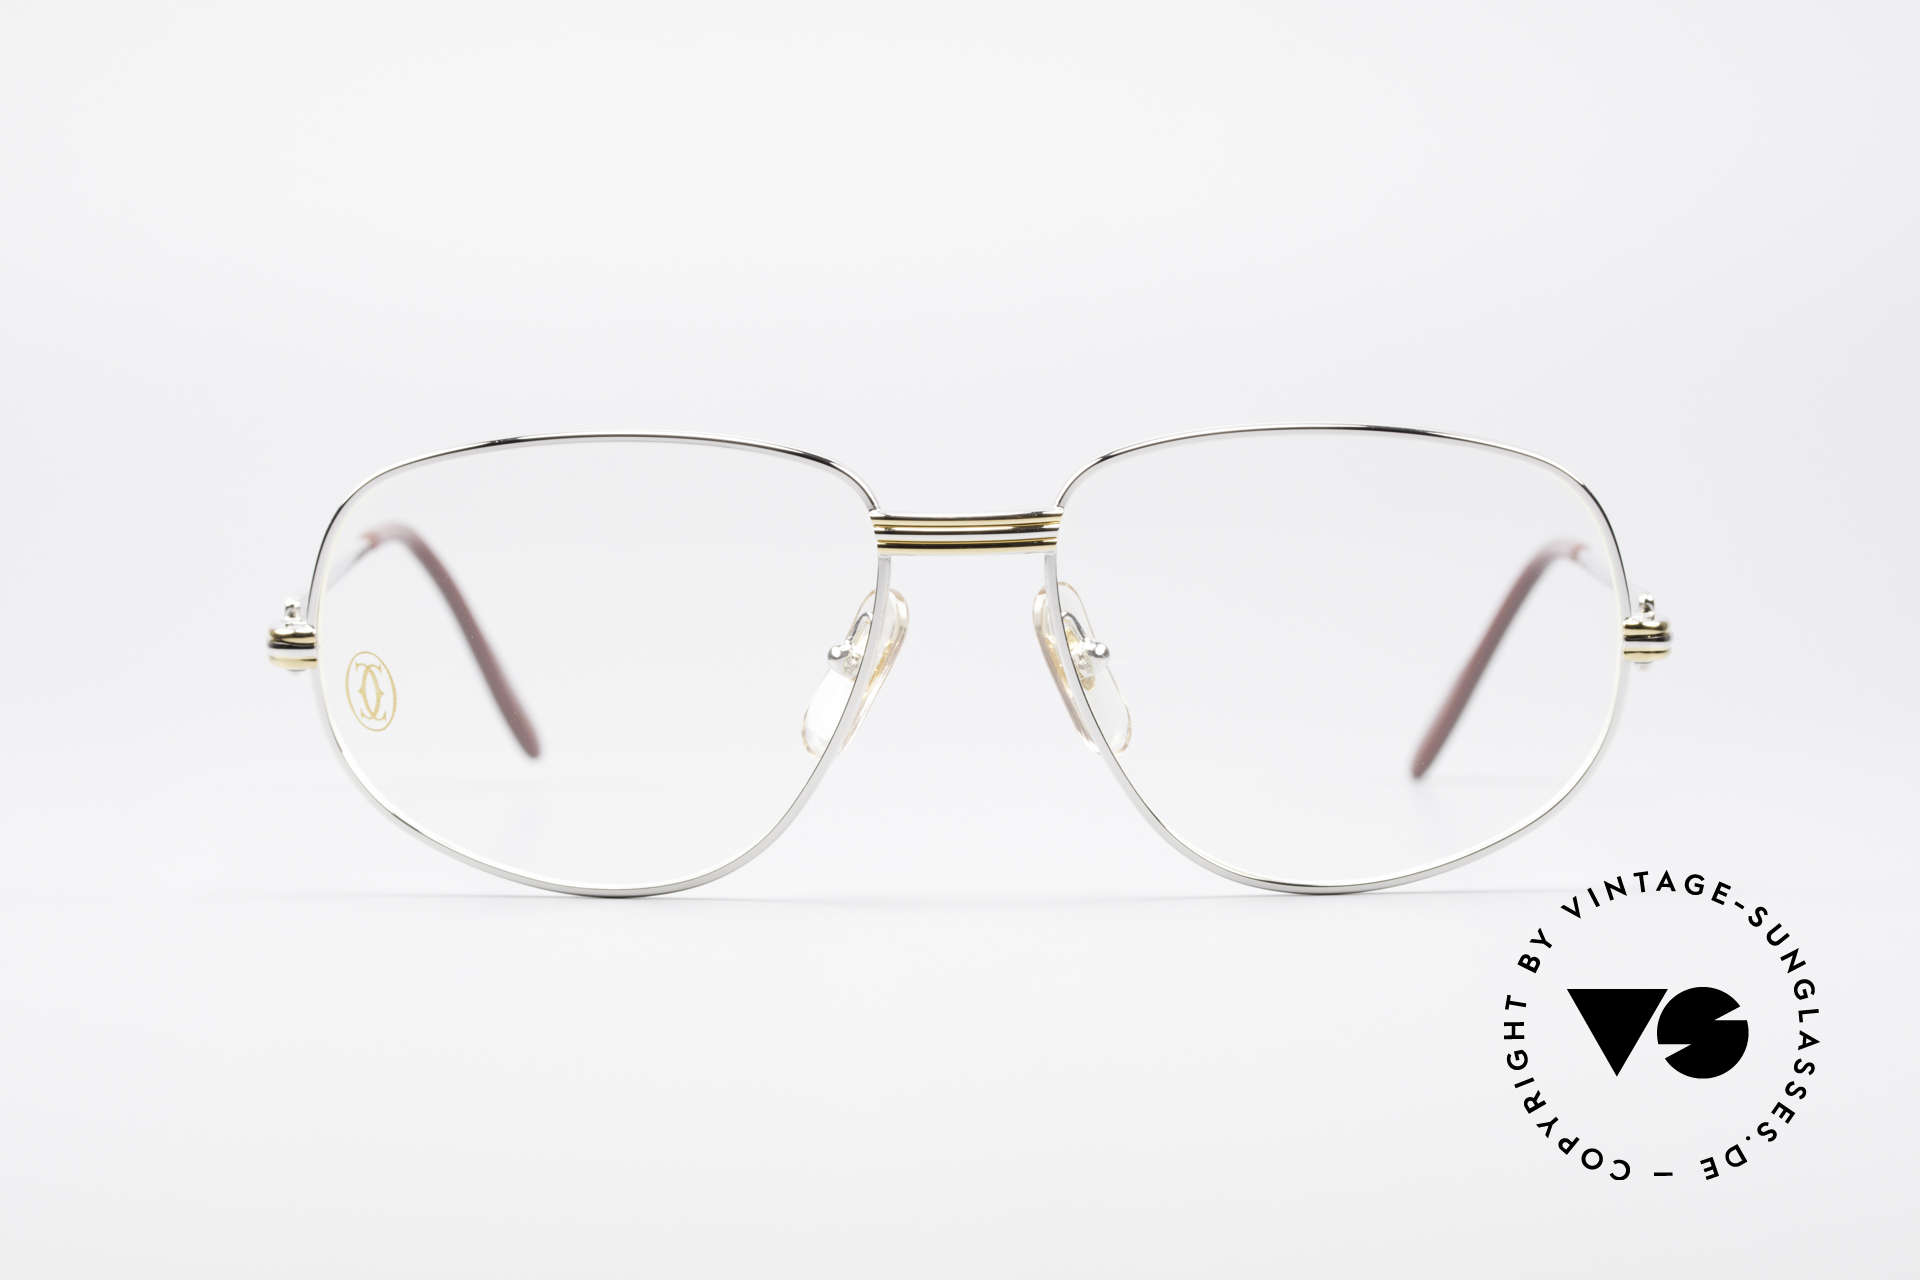 """Cartier Romance LC - M Platinum Finish Glasses, mod. """"Romance"""" was launched in 1986 and made till 1997, Made for Men and Women"""